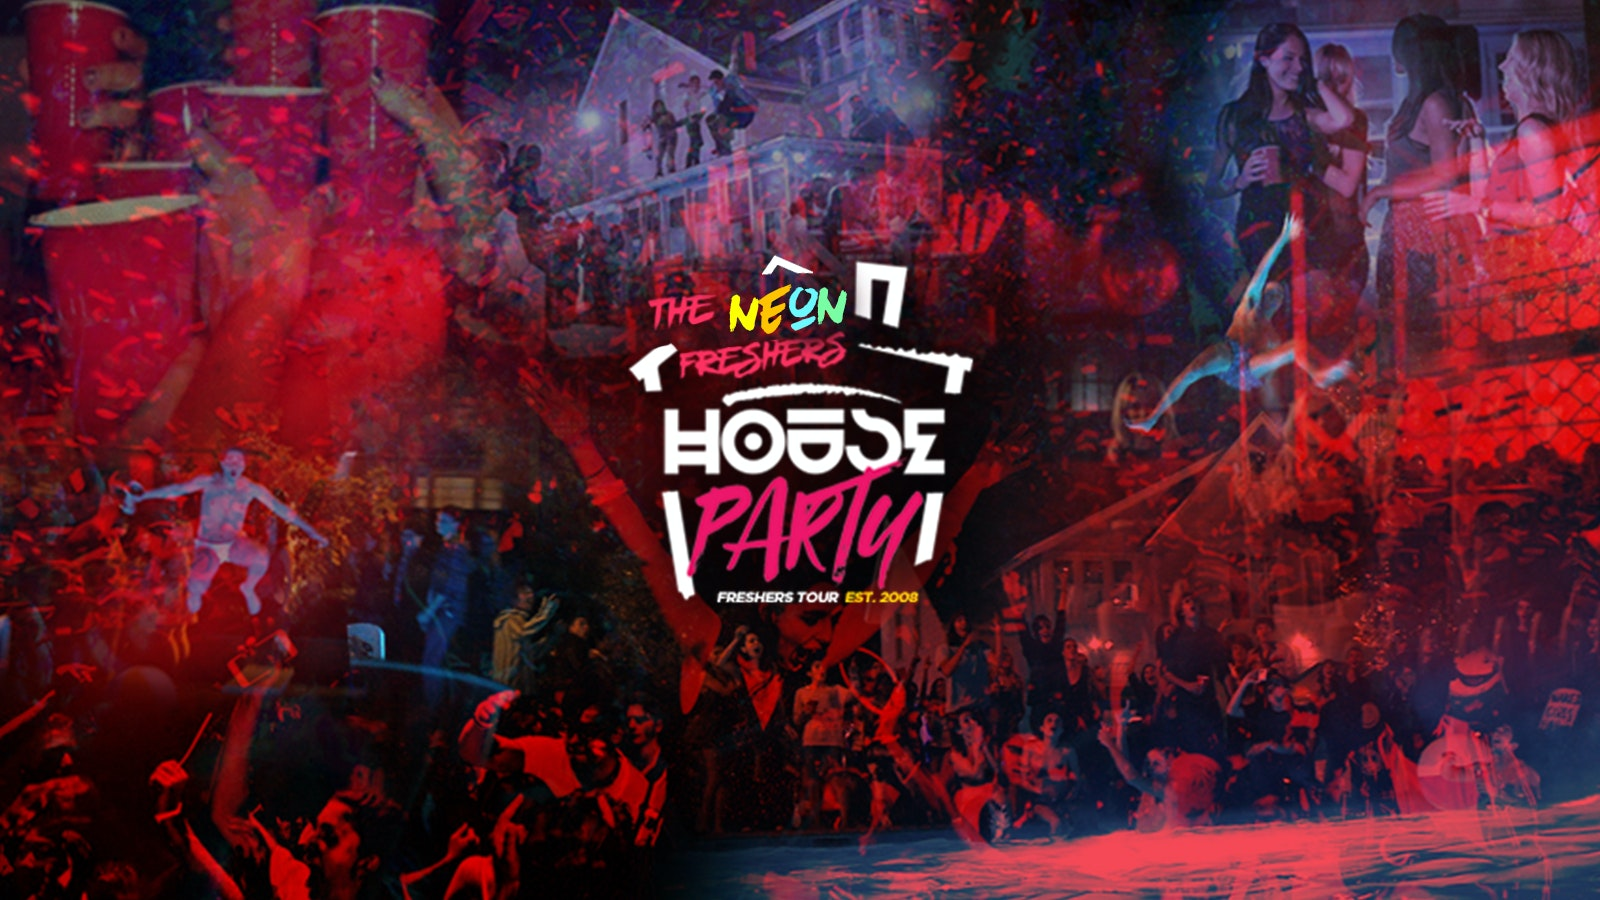 Neon Freshers House Party // Durham Freshers 2020